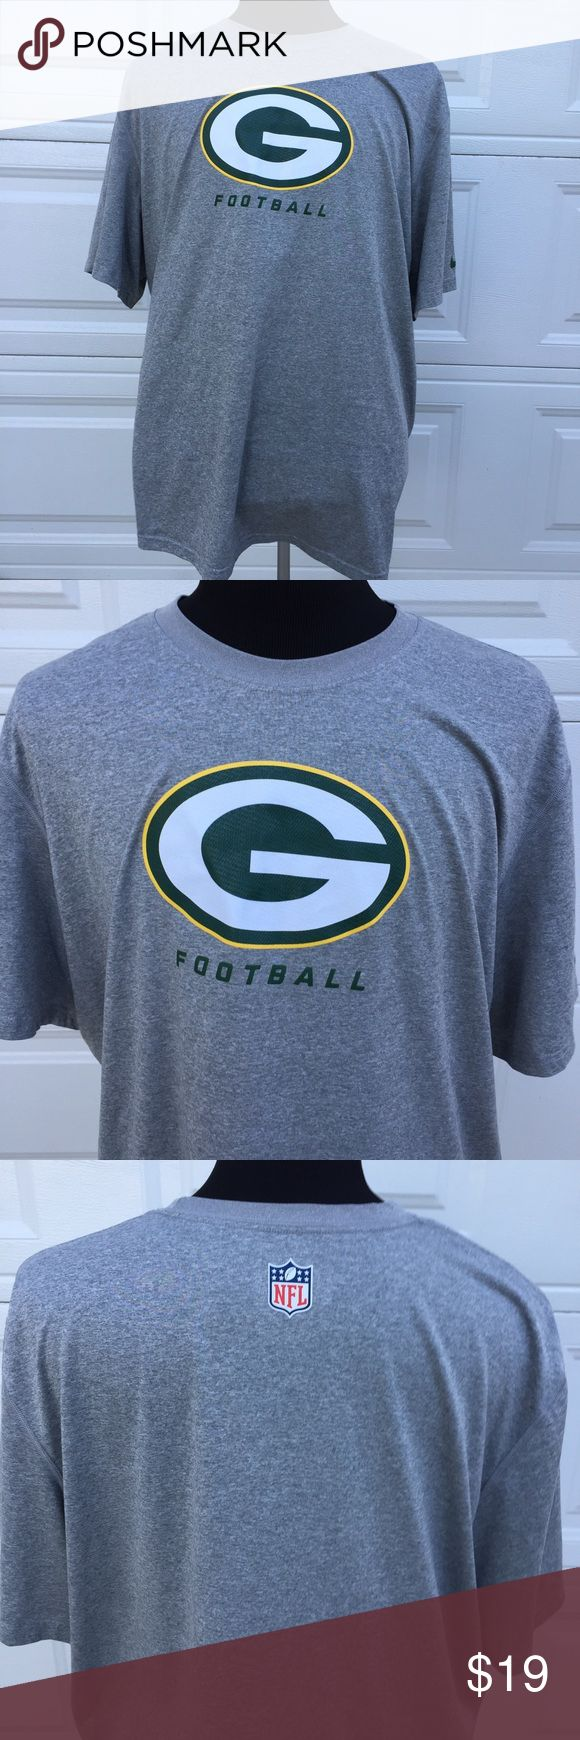 Green Bay Packers NFL Apparel Nike Dryfit 3XL You're purchasing a Green Bay Packers NFL Apparel Nike Dryfit 3XL. Gently used in very good condition. See pics for measurements. Thanks for visiting. Nike Shirts Dress Shirts